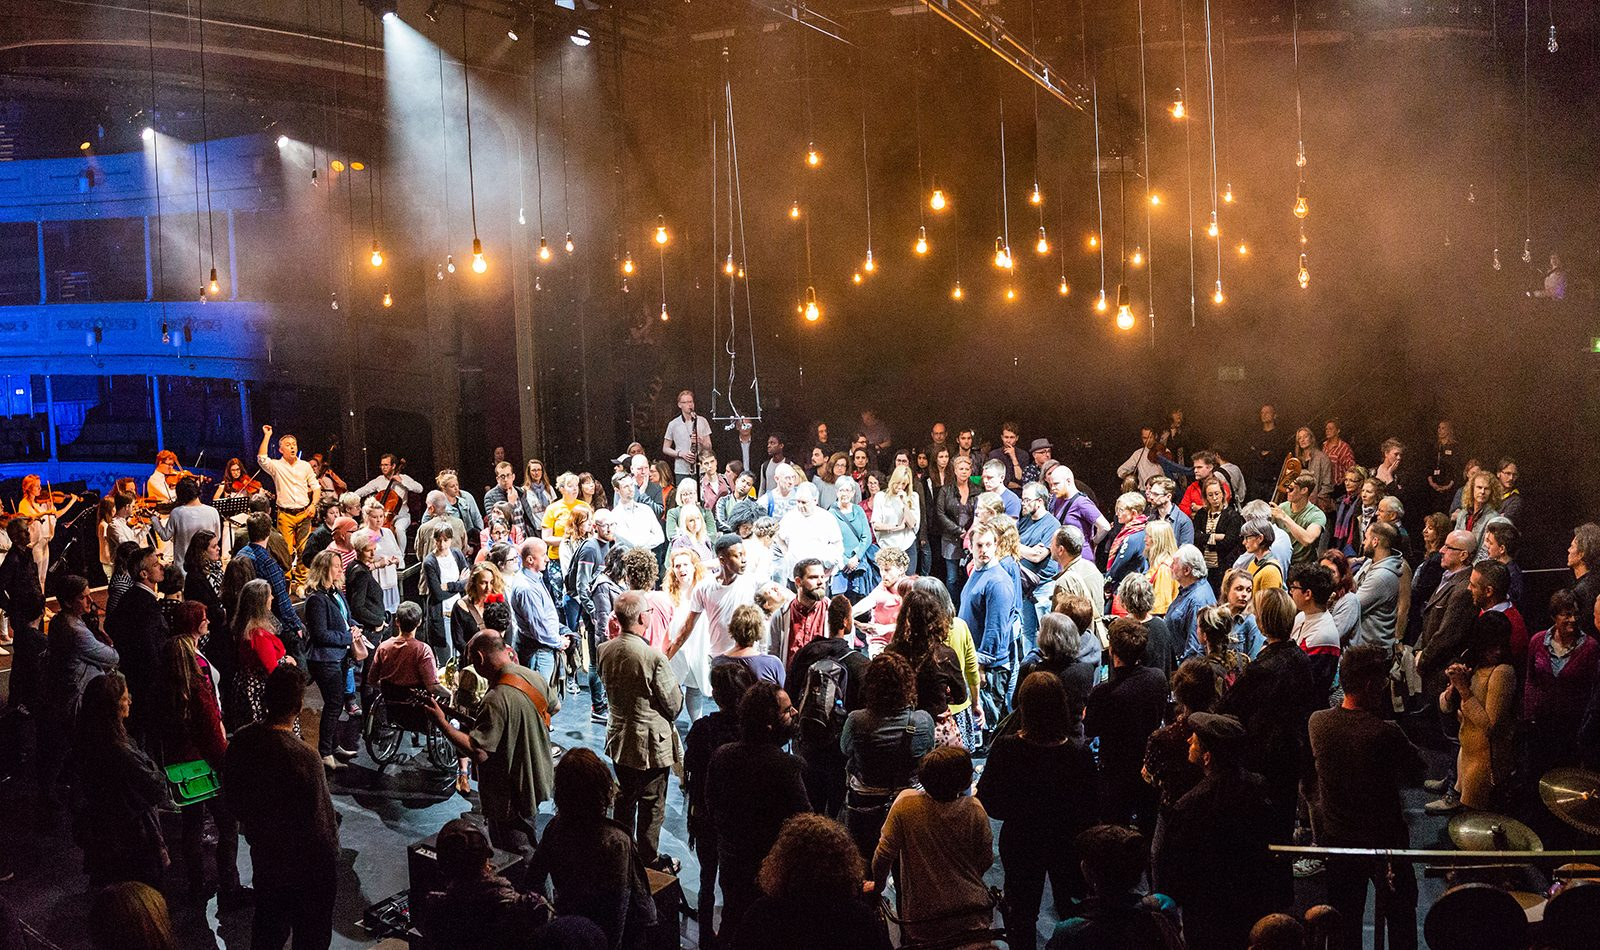 An audience and performers on stage blub lighting hangs from the ceiling